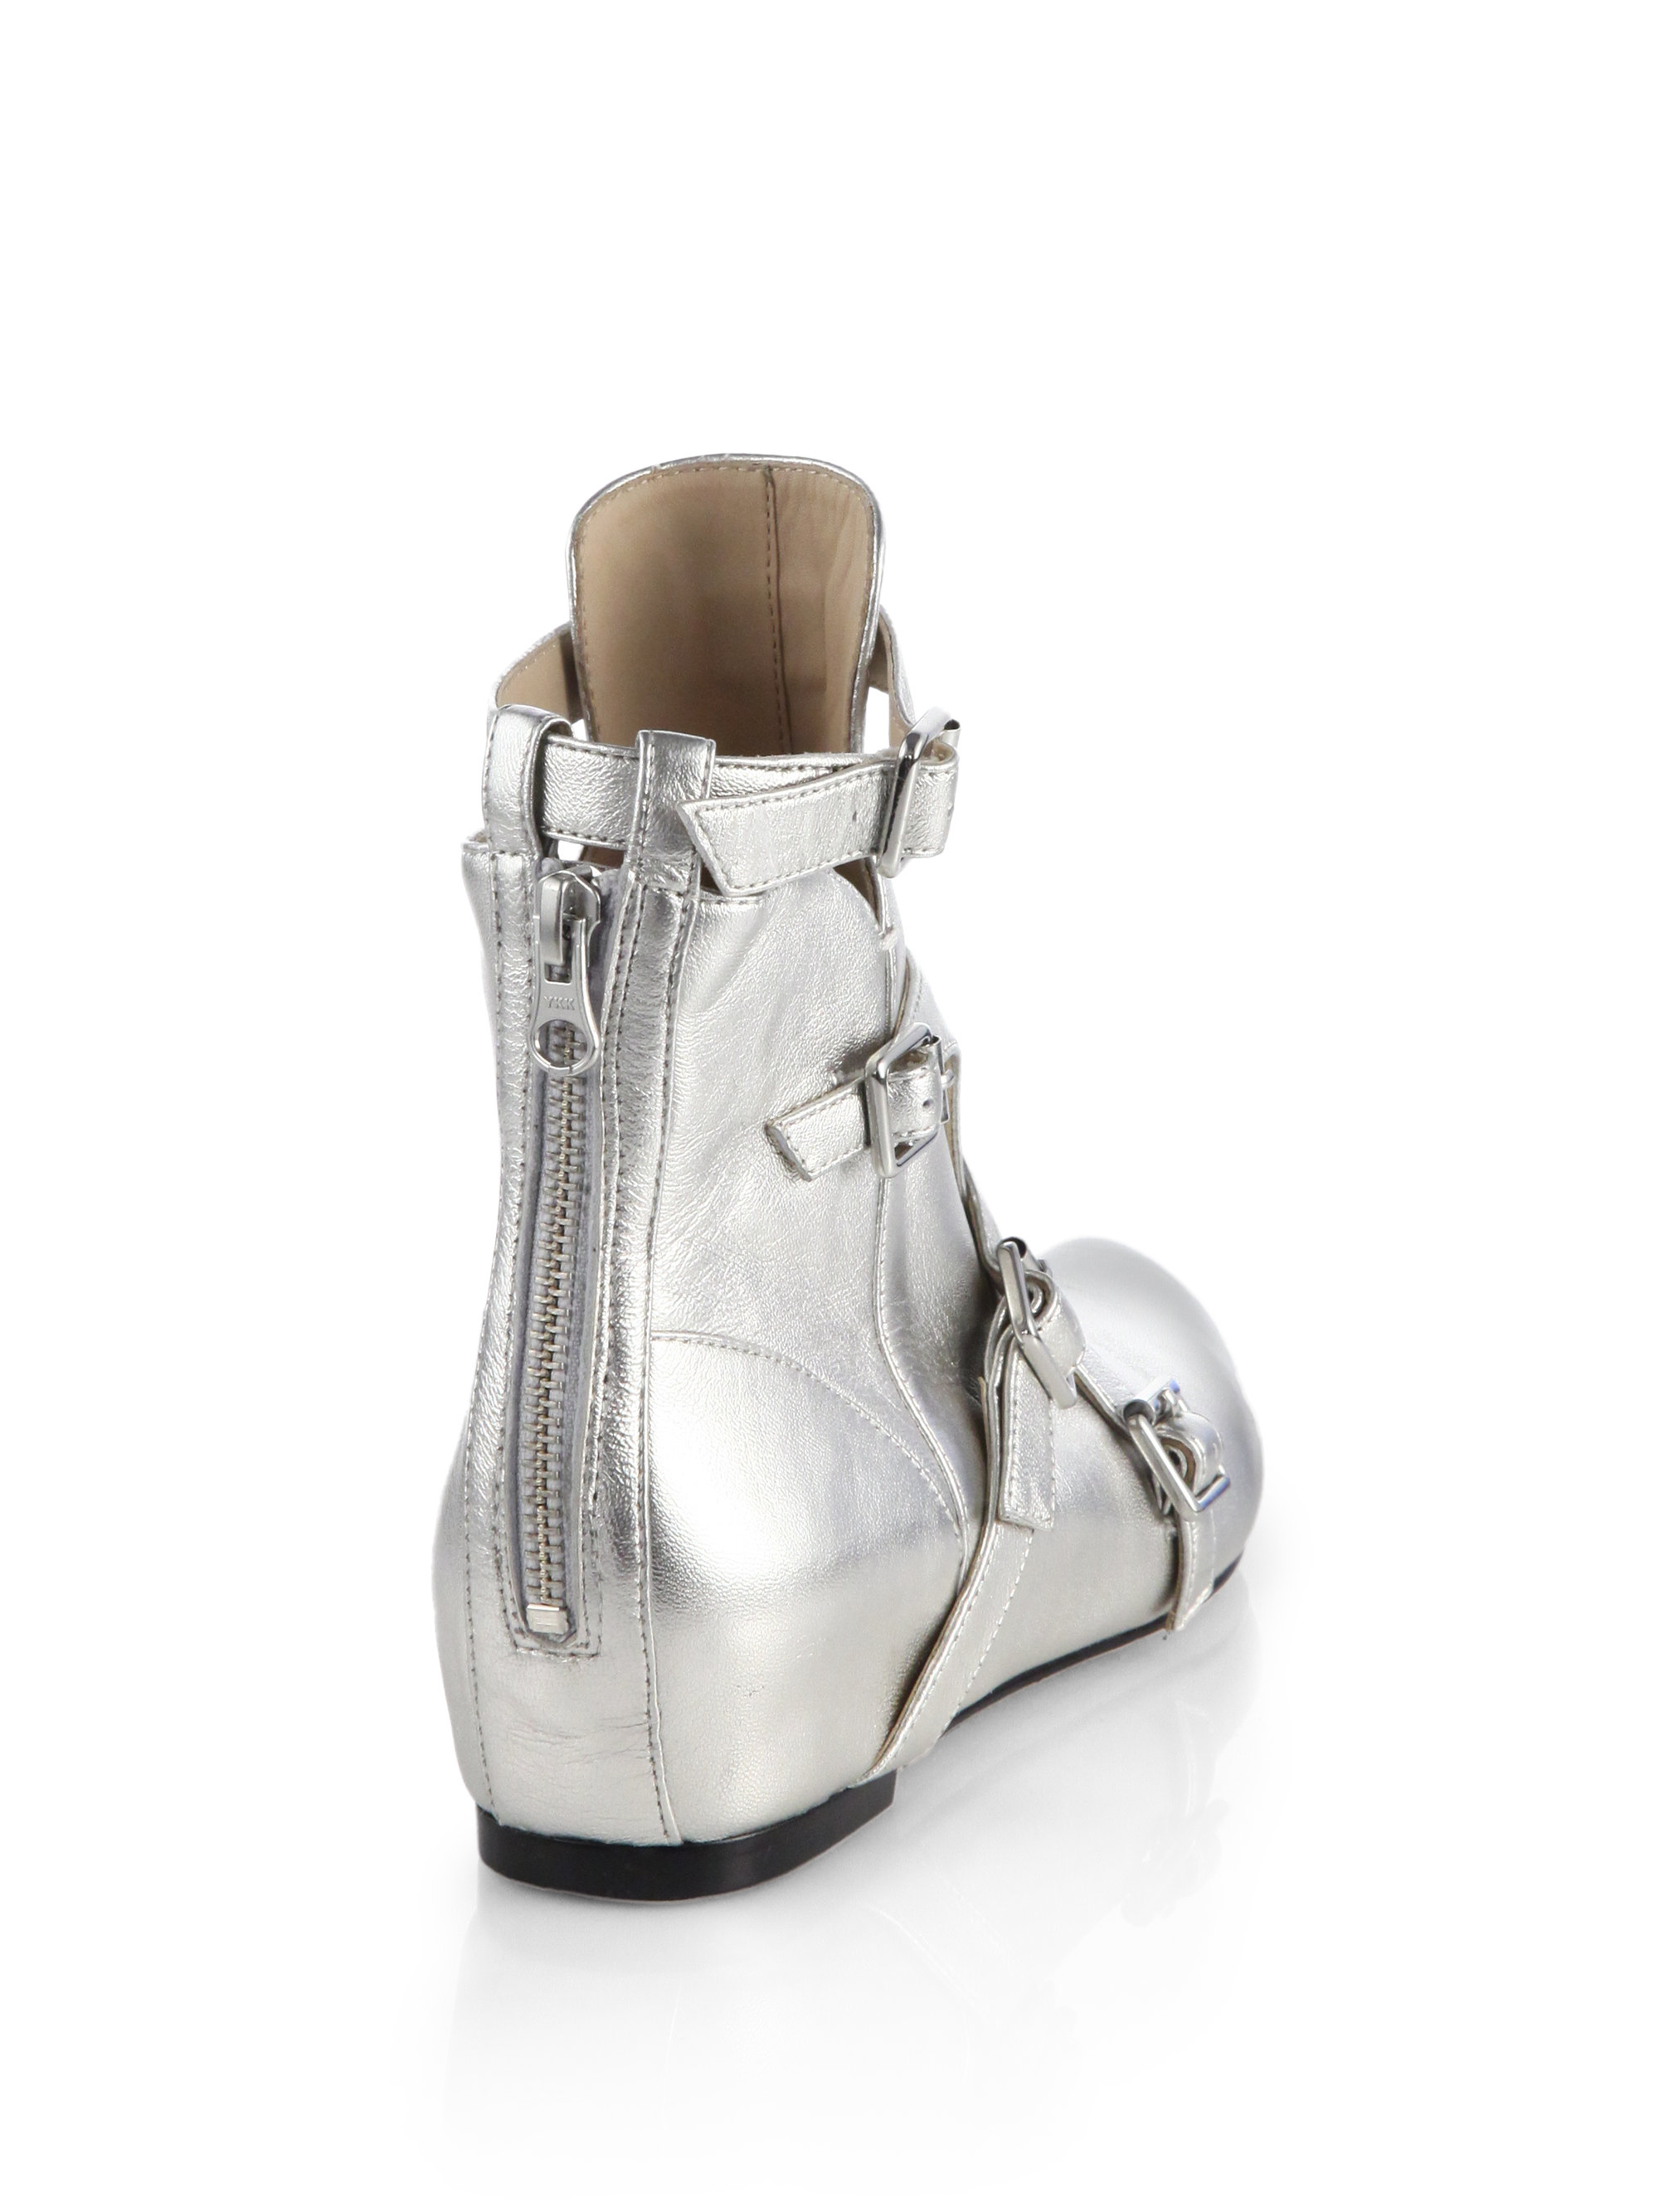 Elizabeth and james Cosmo Metallic Leather Wedge Ankle Boots in ...